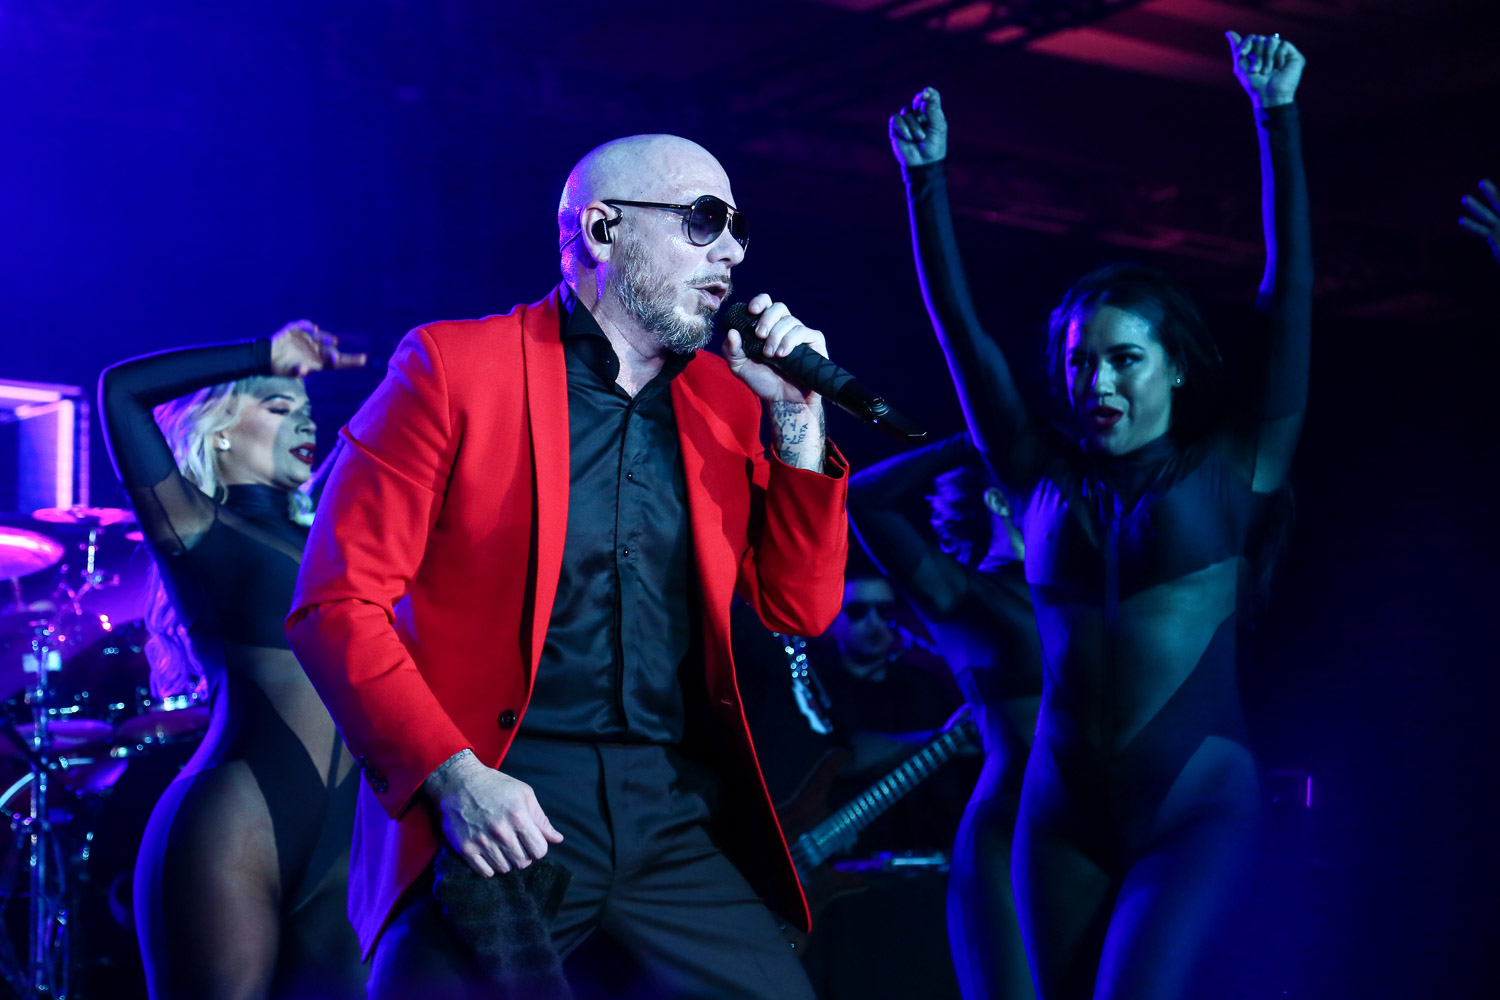 Pitbull performing at the Kansas City Chiefs Super Bowl LIV afterparty in Miami, Florida on February 3, 2021